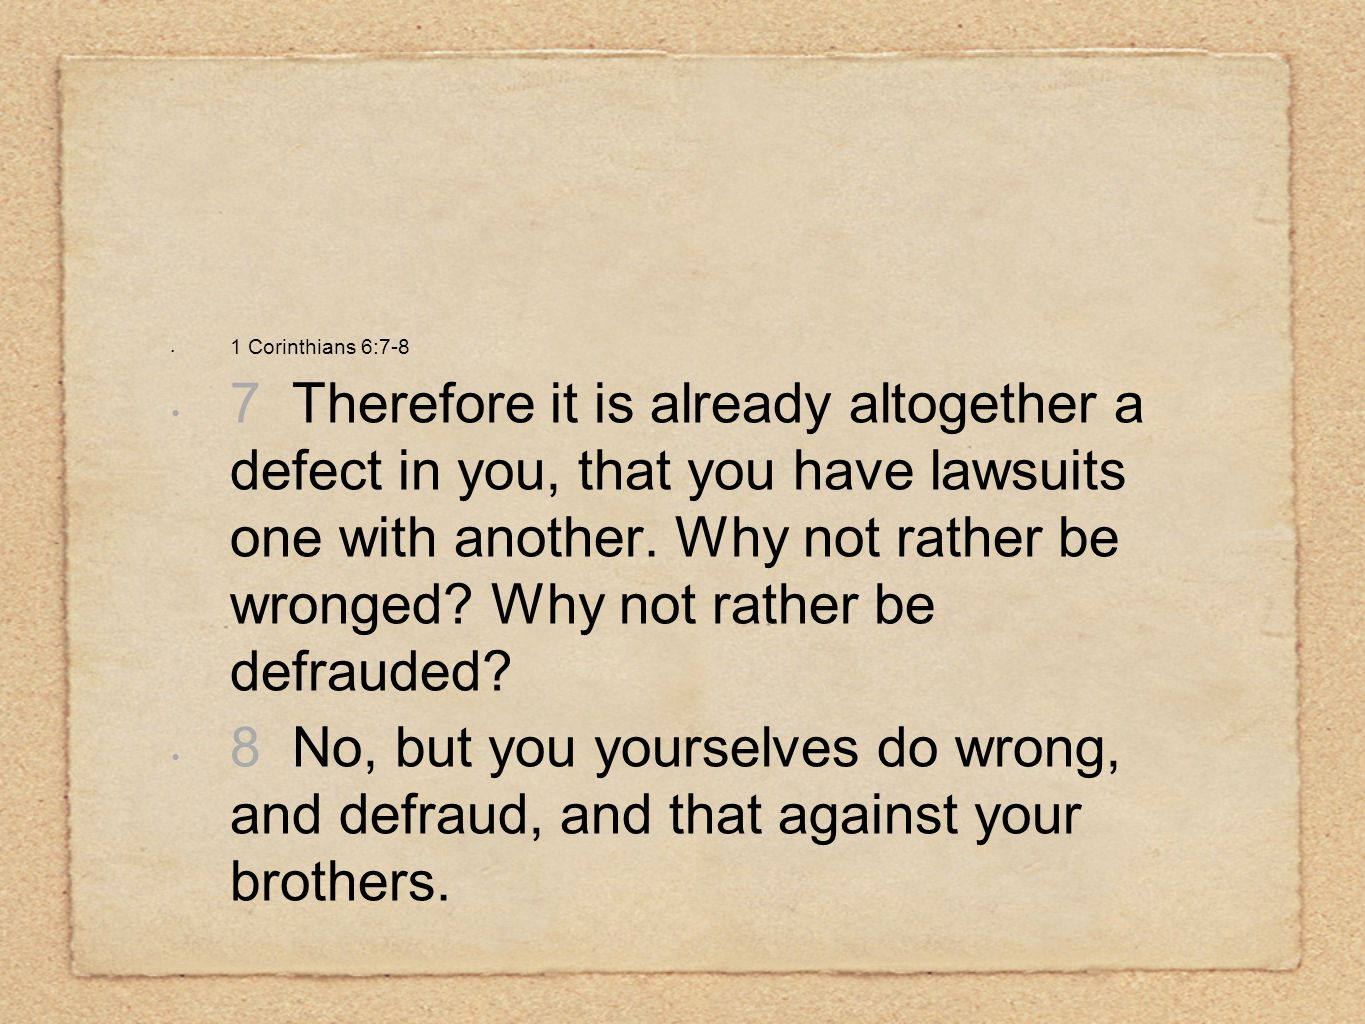 1 Corinthians 6:7-8 7 Therefore it is already altogether a defect in you, that you have lawsuits one with another. Why not rather be wronged? Why not